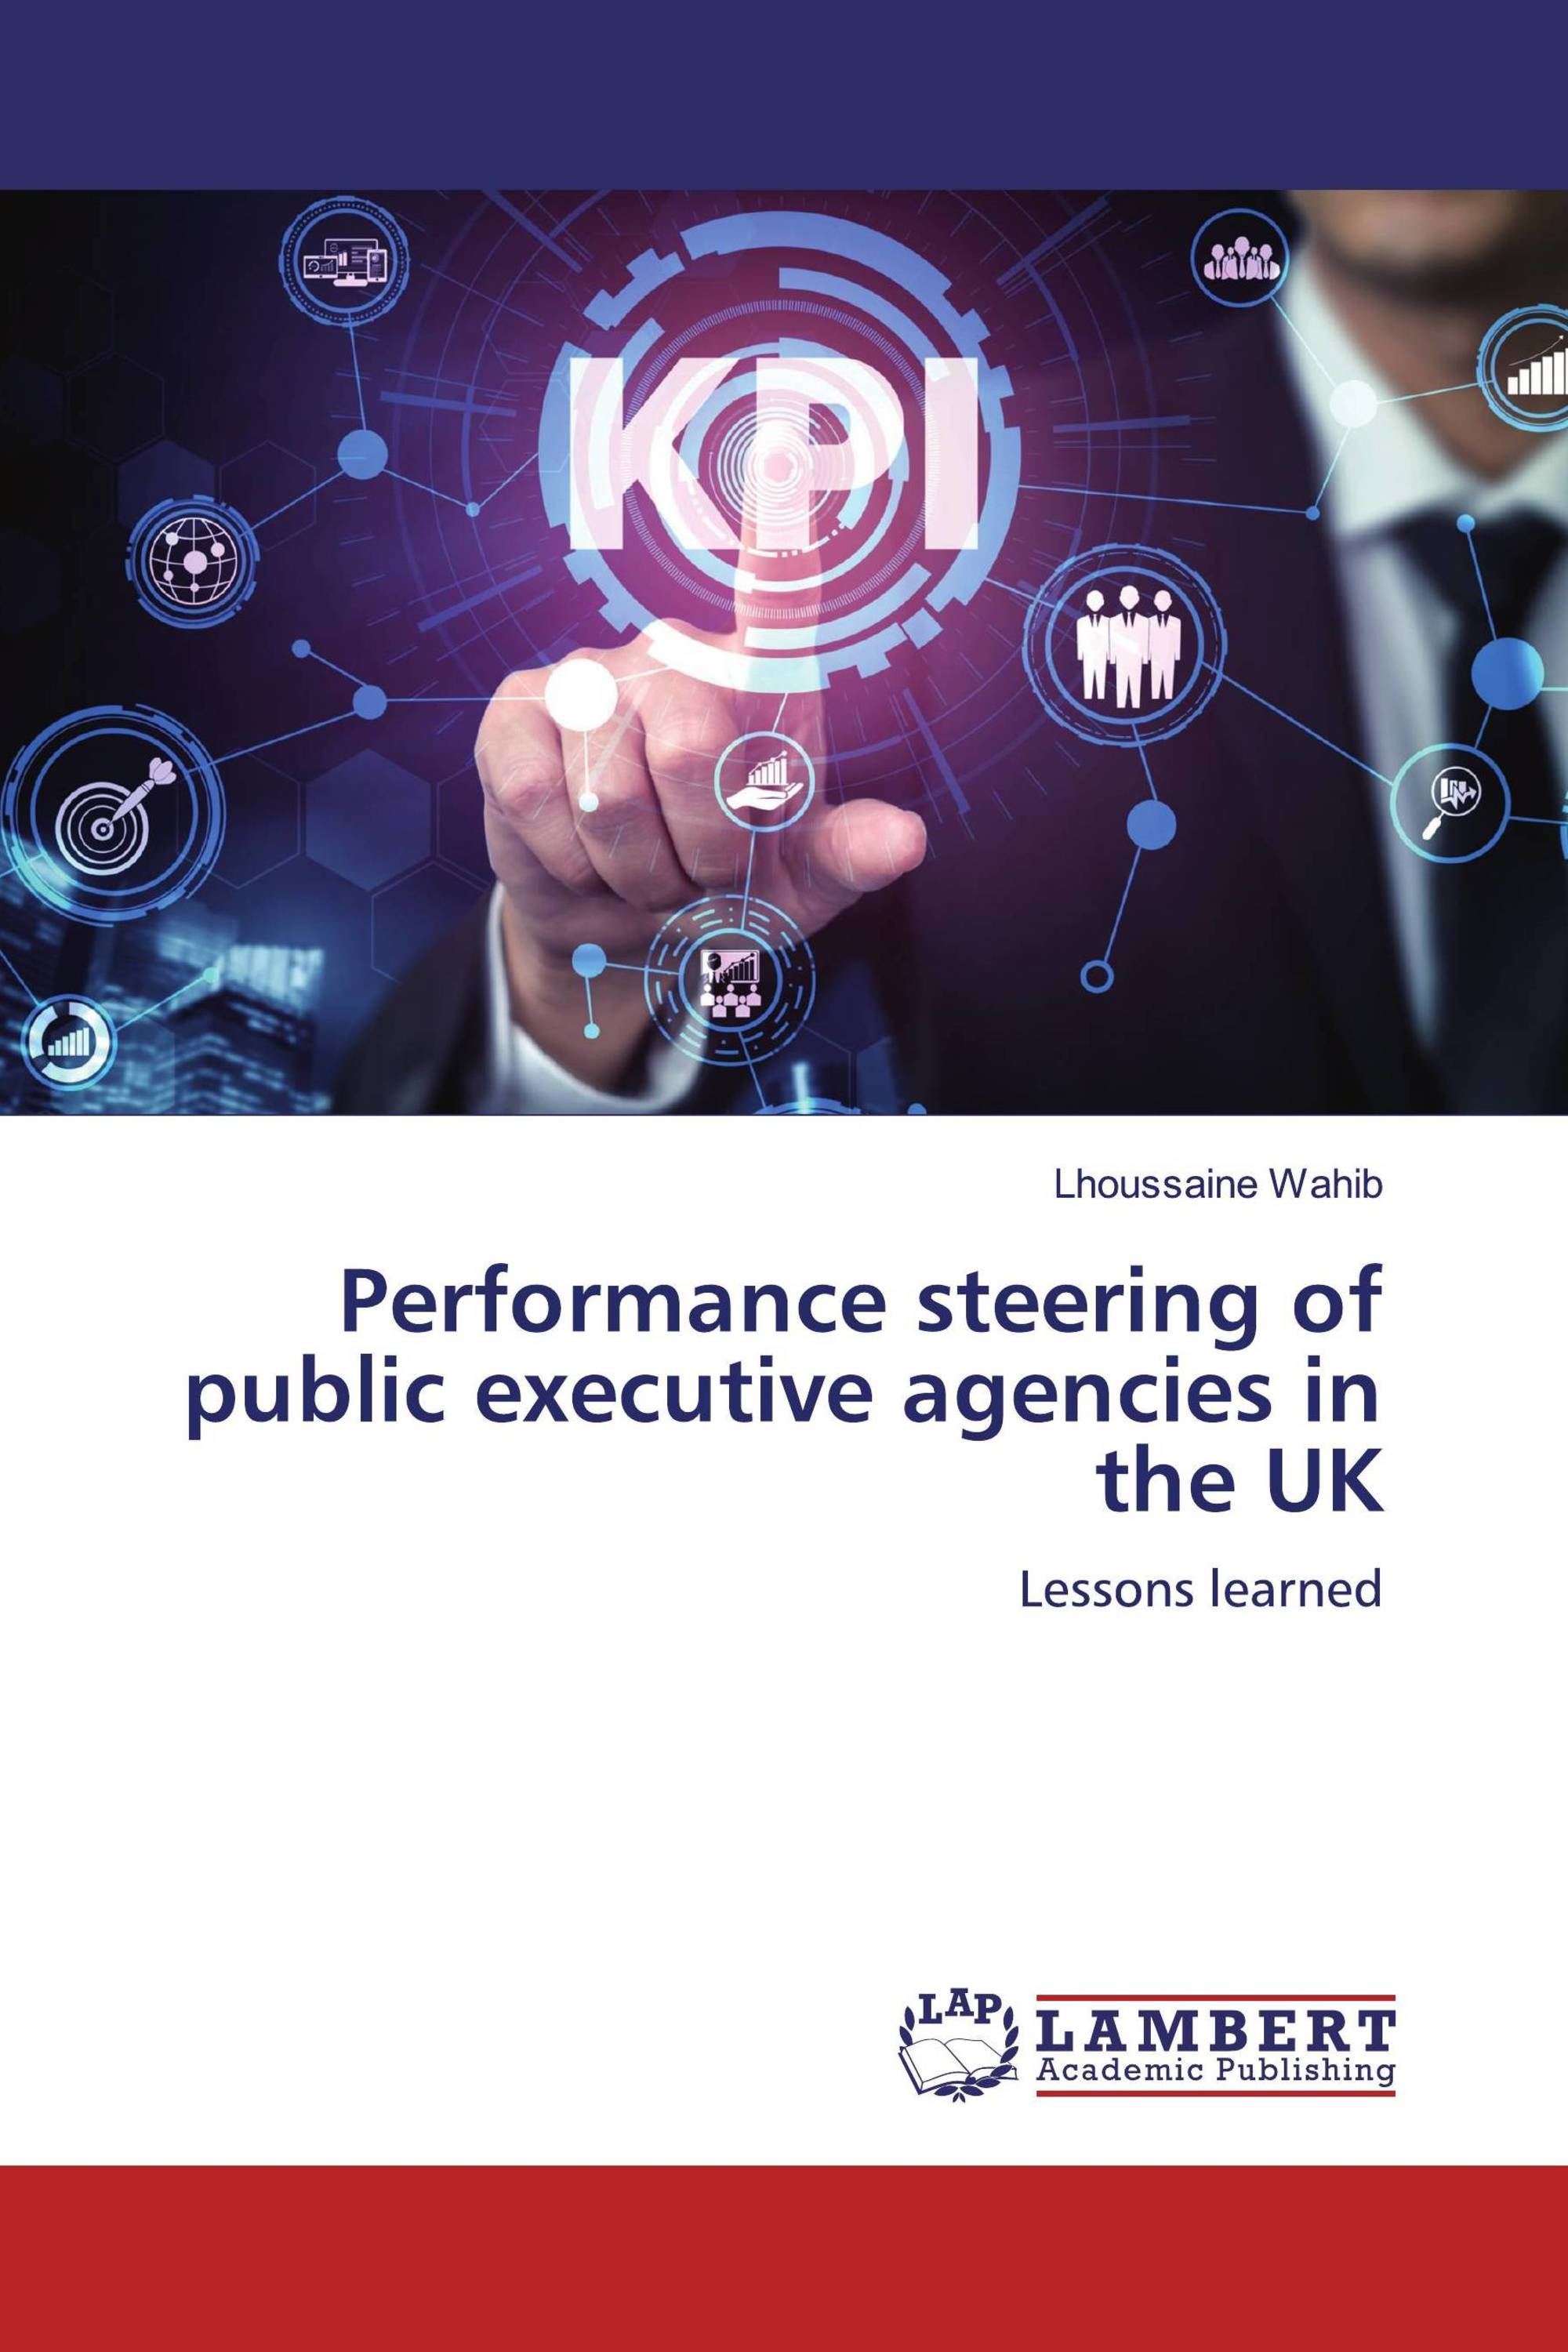 Performance steering of public executive agencies in the UK